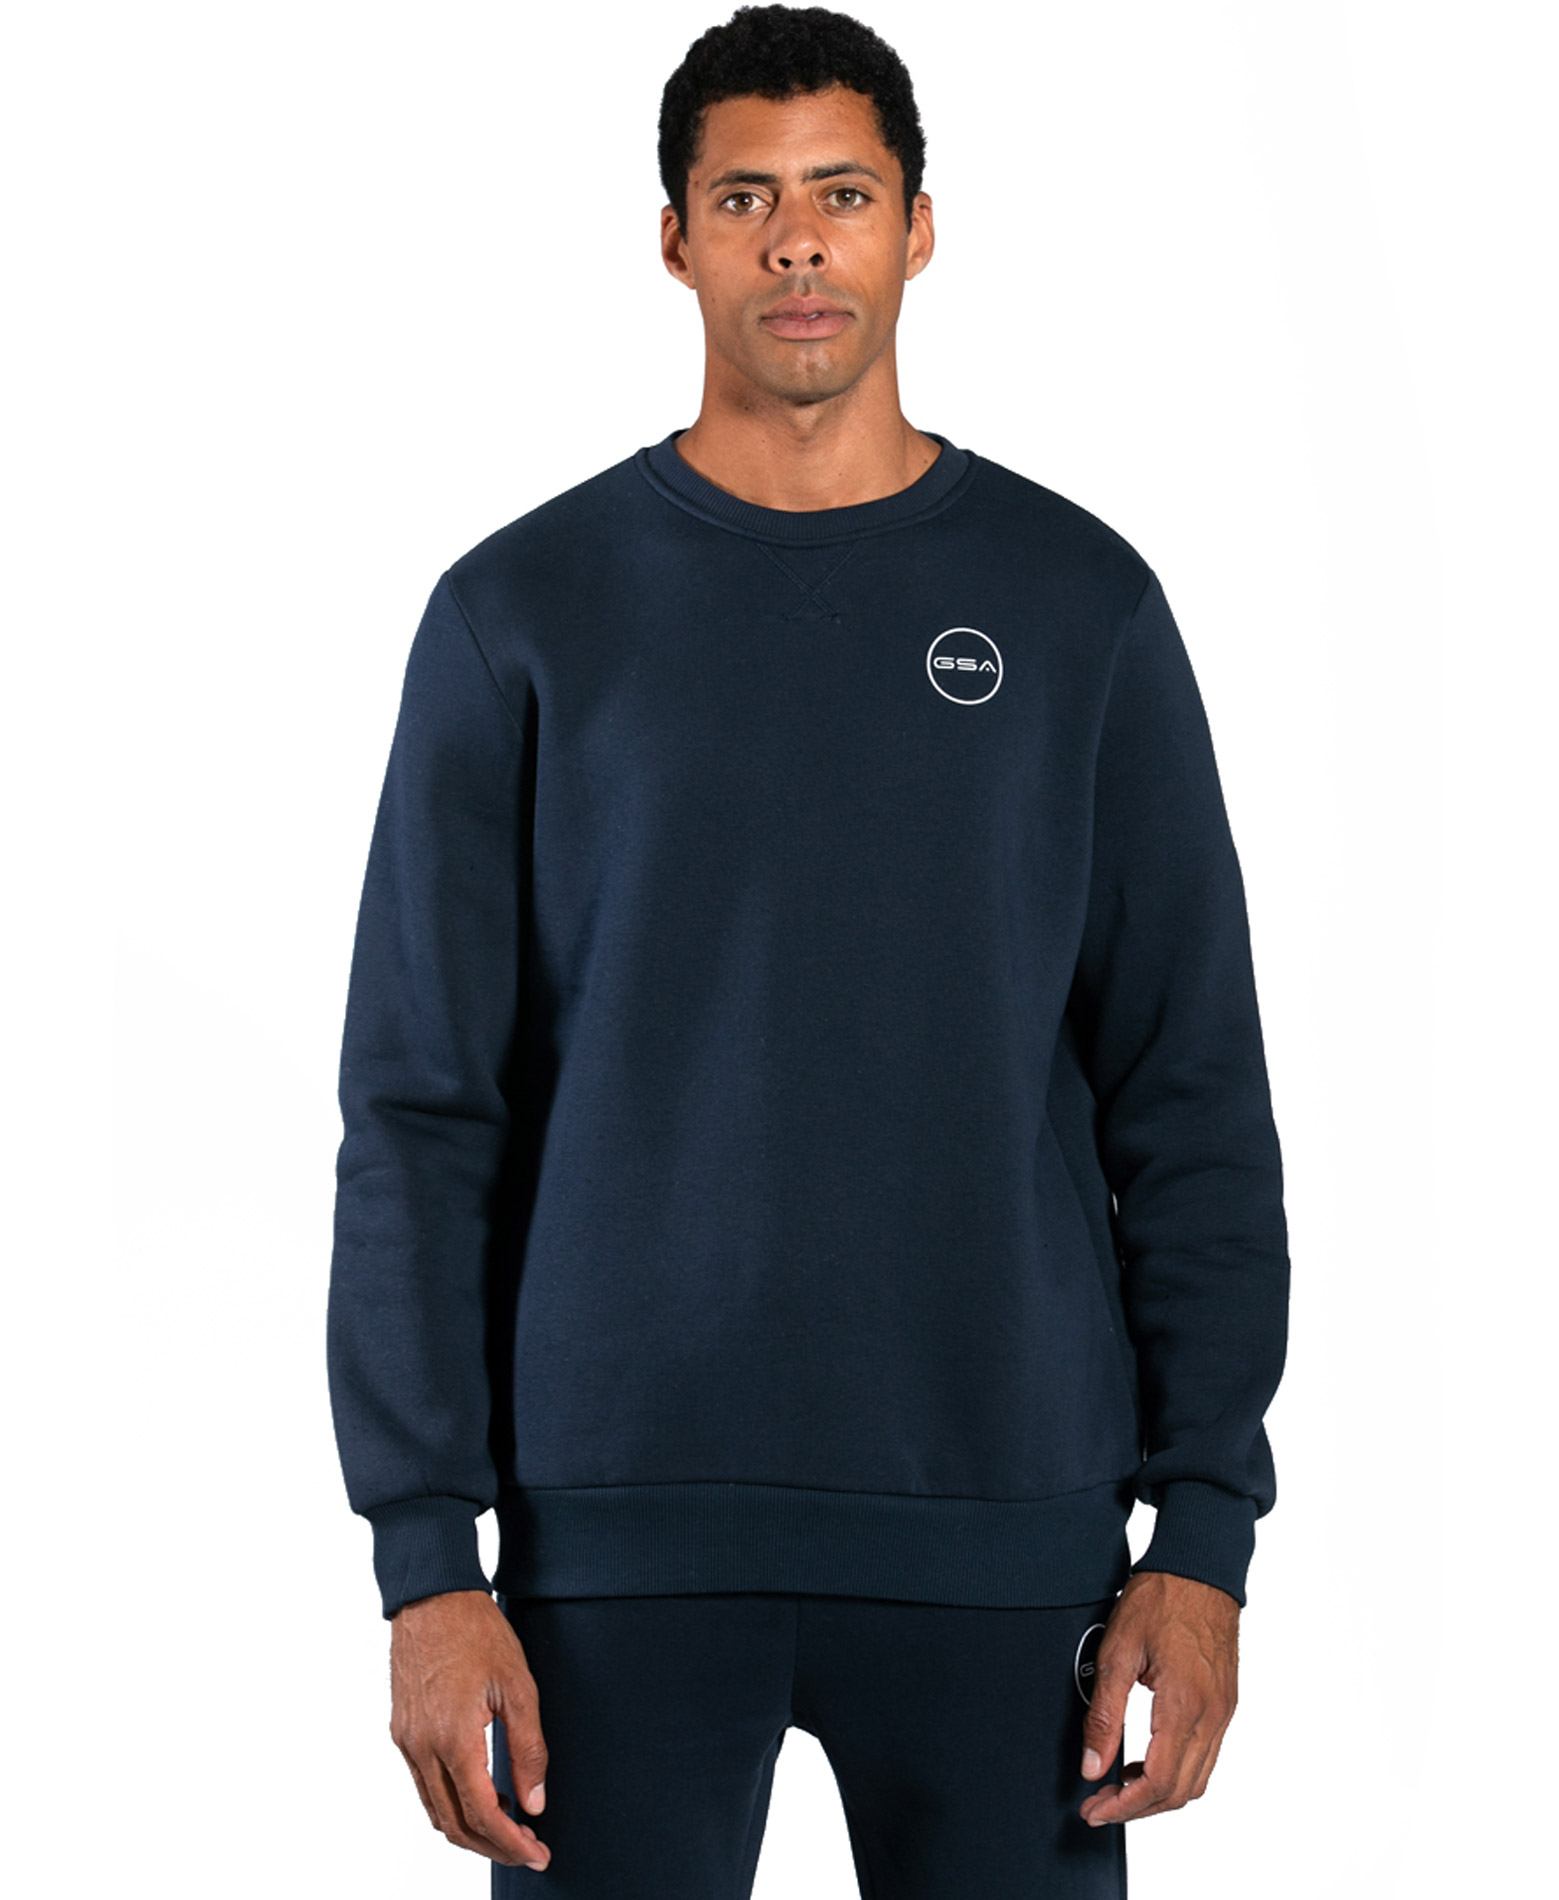 GSA SUPERCOTTON LONG SLEEVE CREW NECK 17-17025-03 BLUE MARINE Μπλε